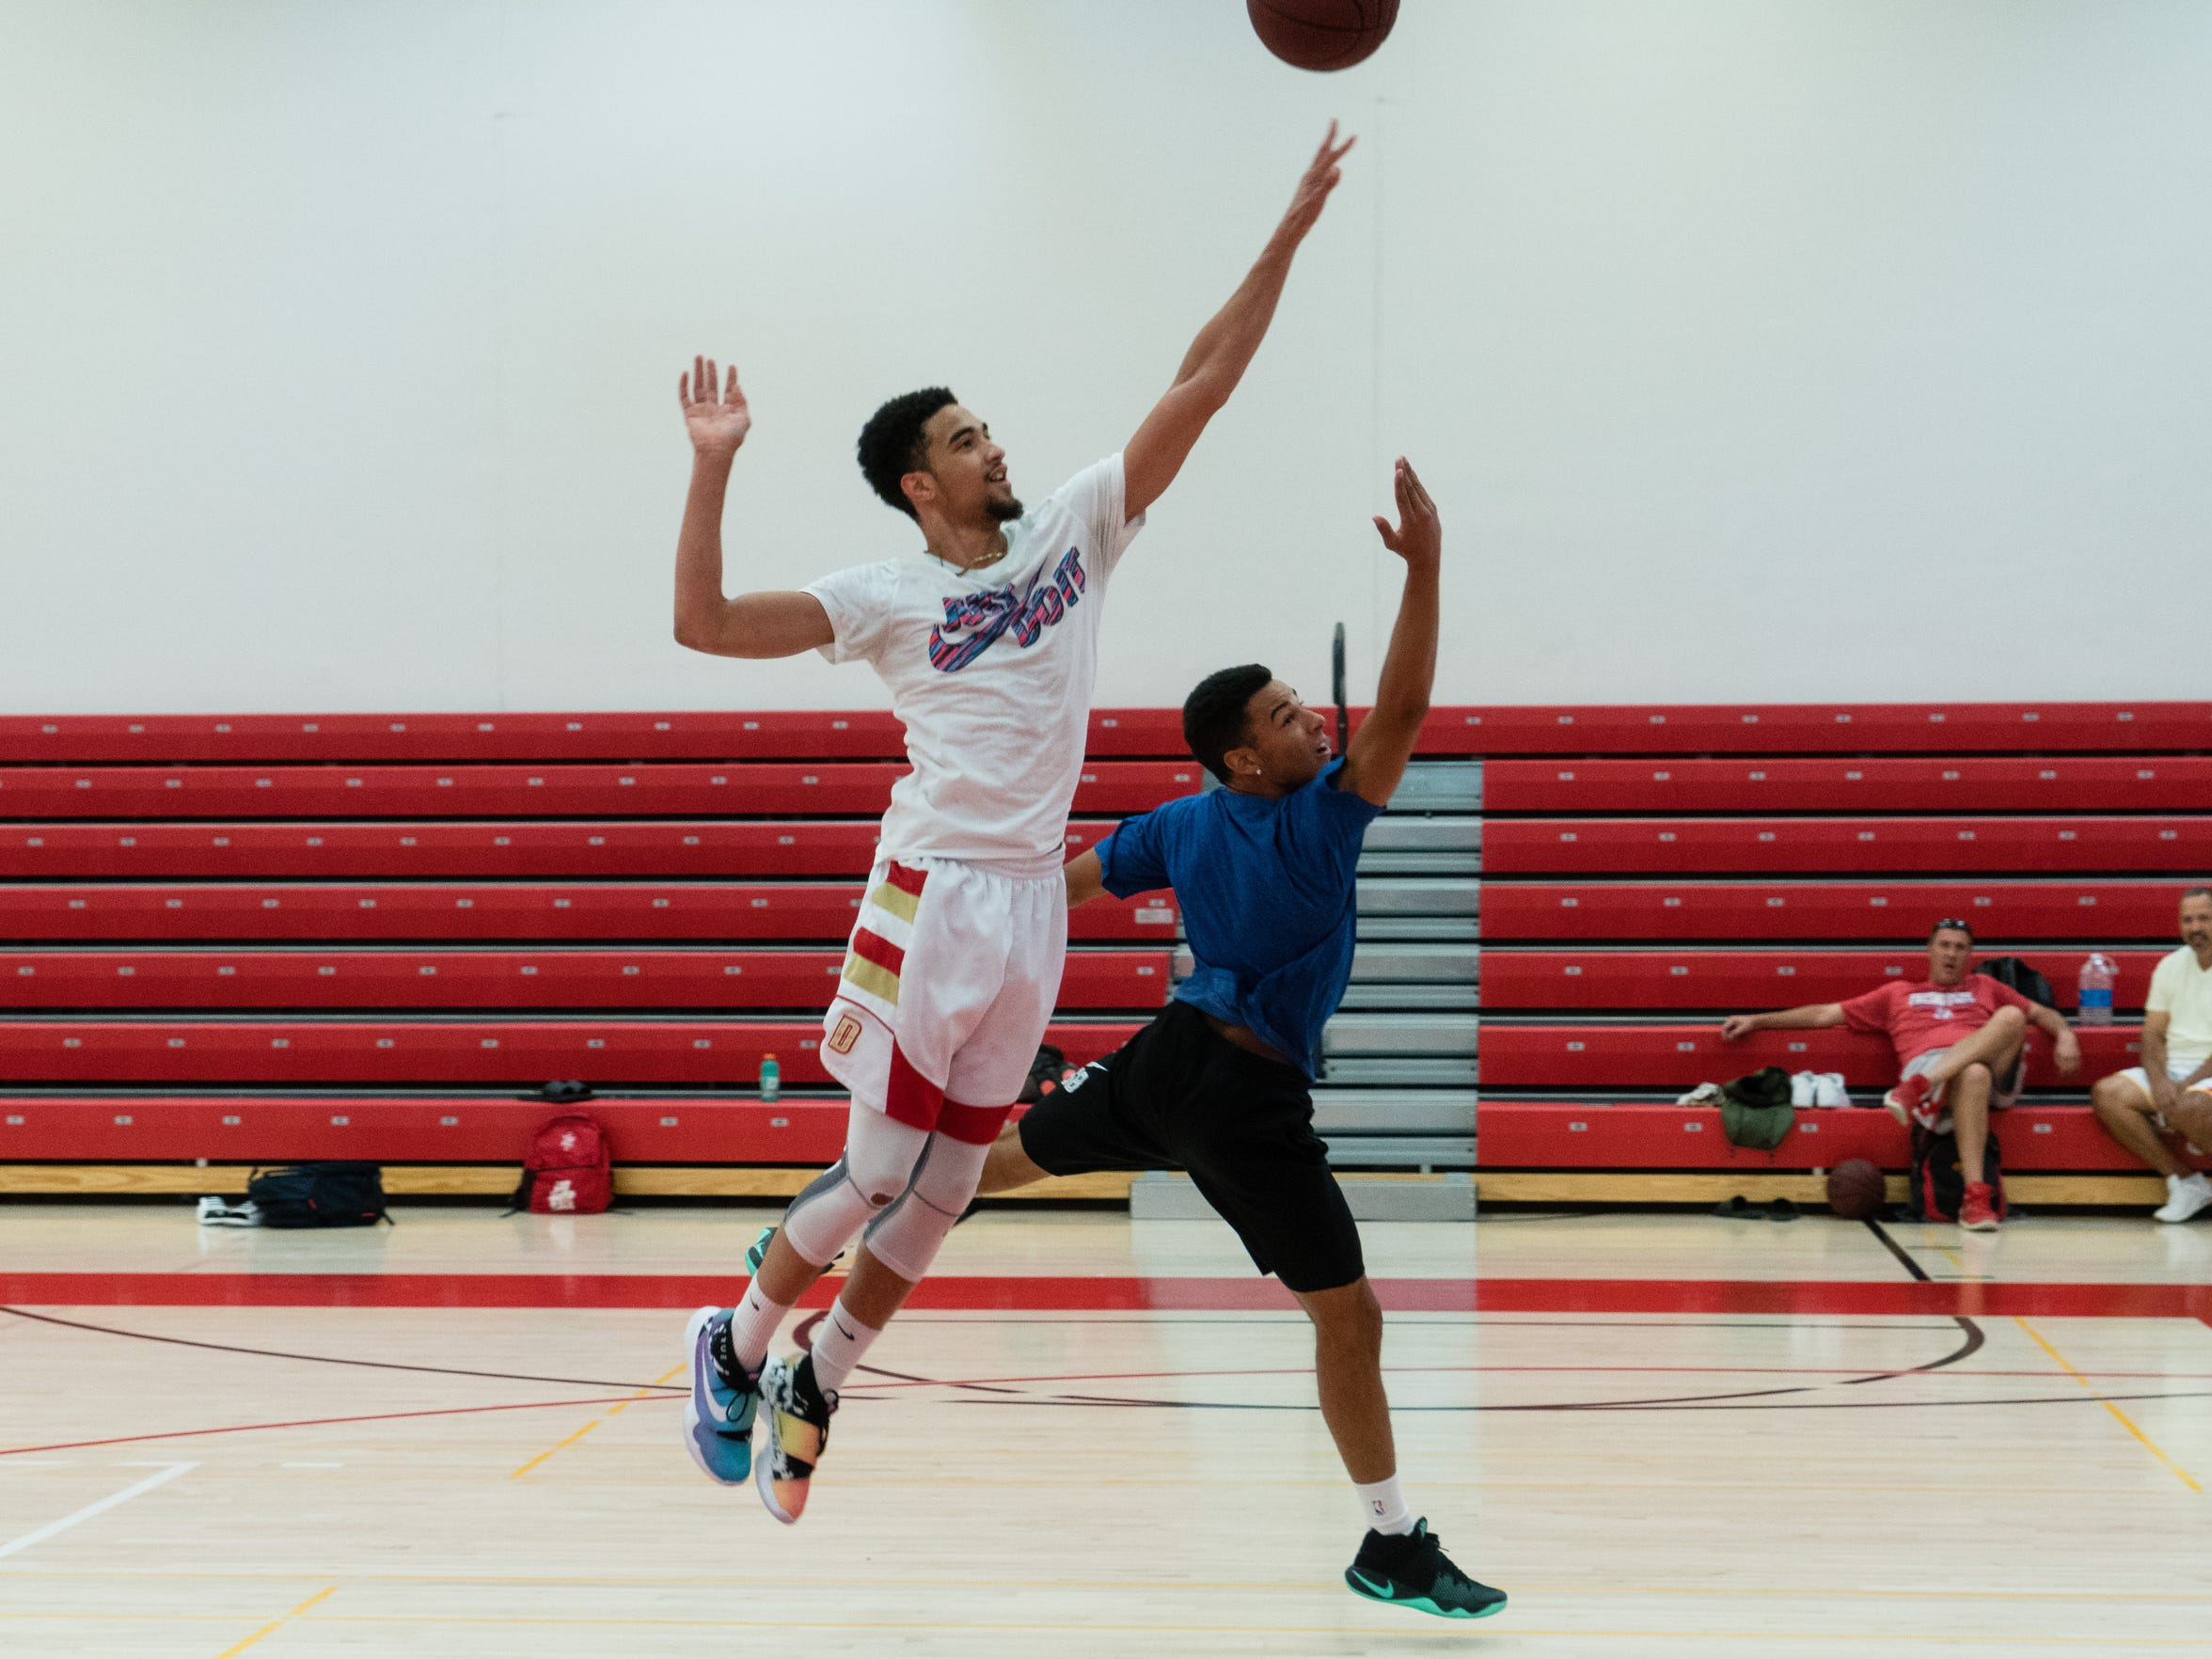 Philippe Salawa practices with a teammate at College